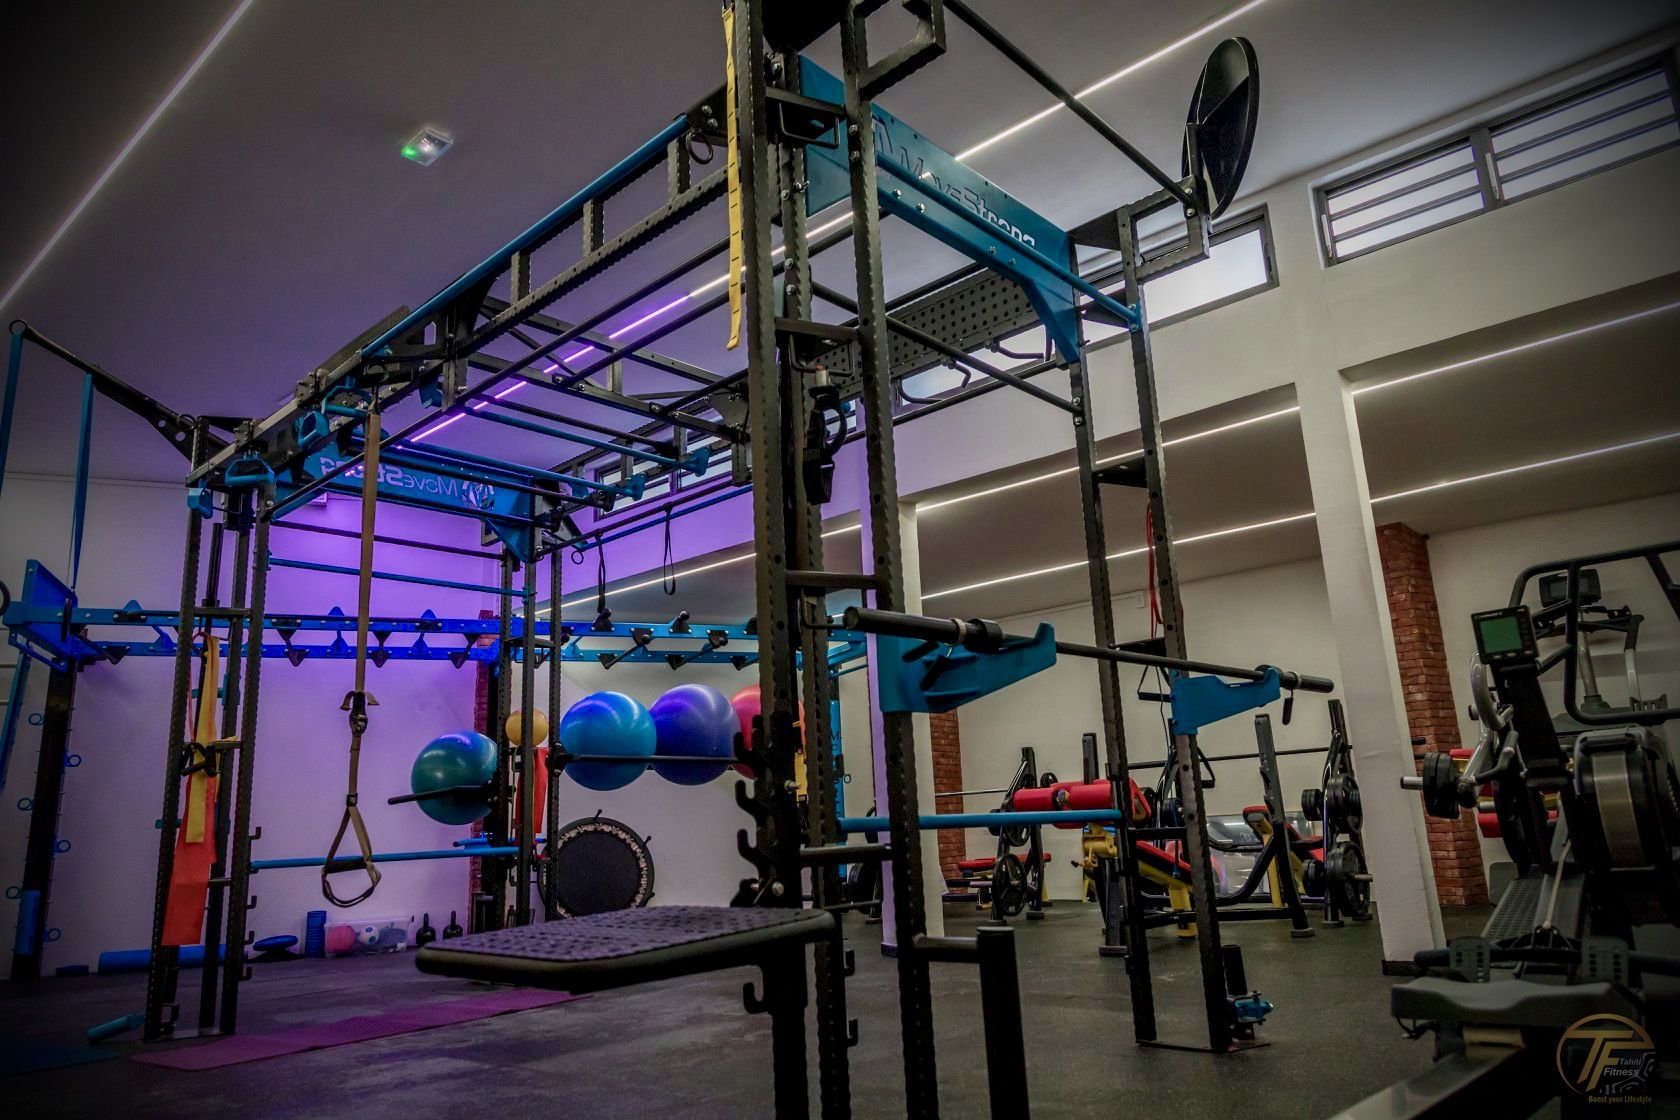 Island Gym Tahiti Fitness Creates Group Functional Training With Movestrong Movestrong Functional Training Island Gym Training Tools